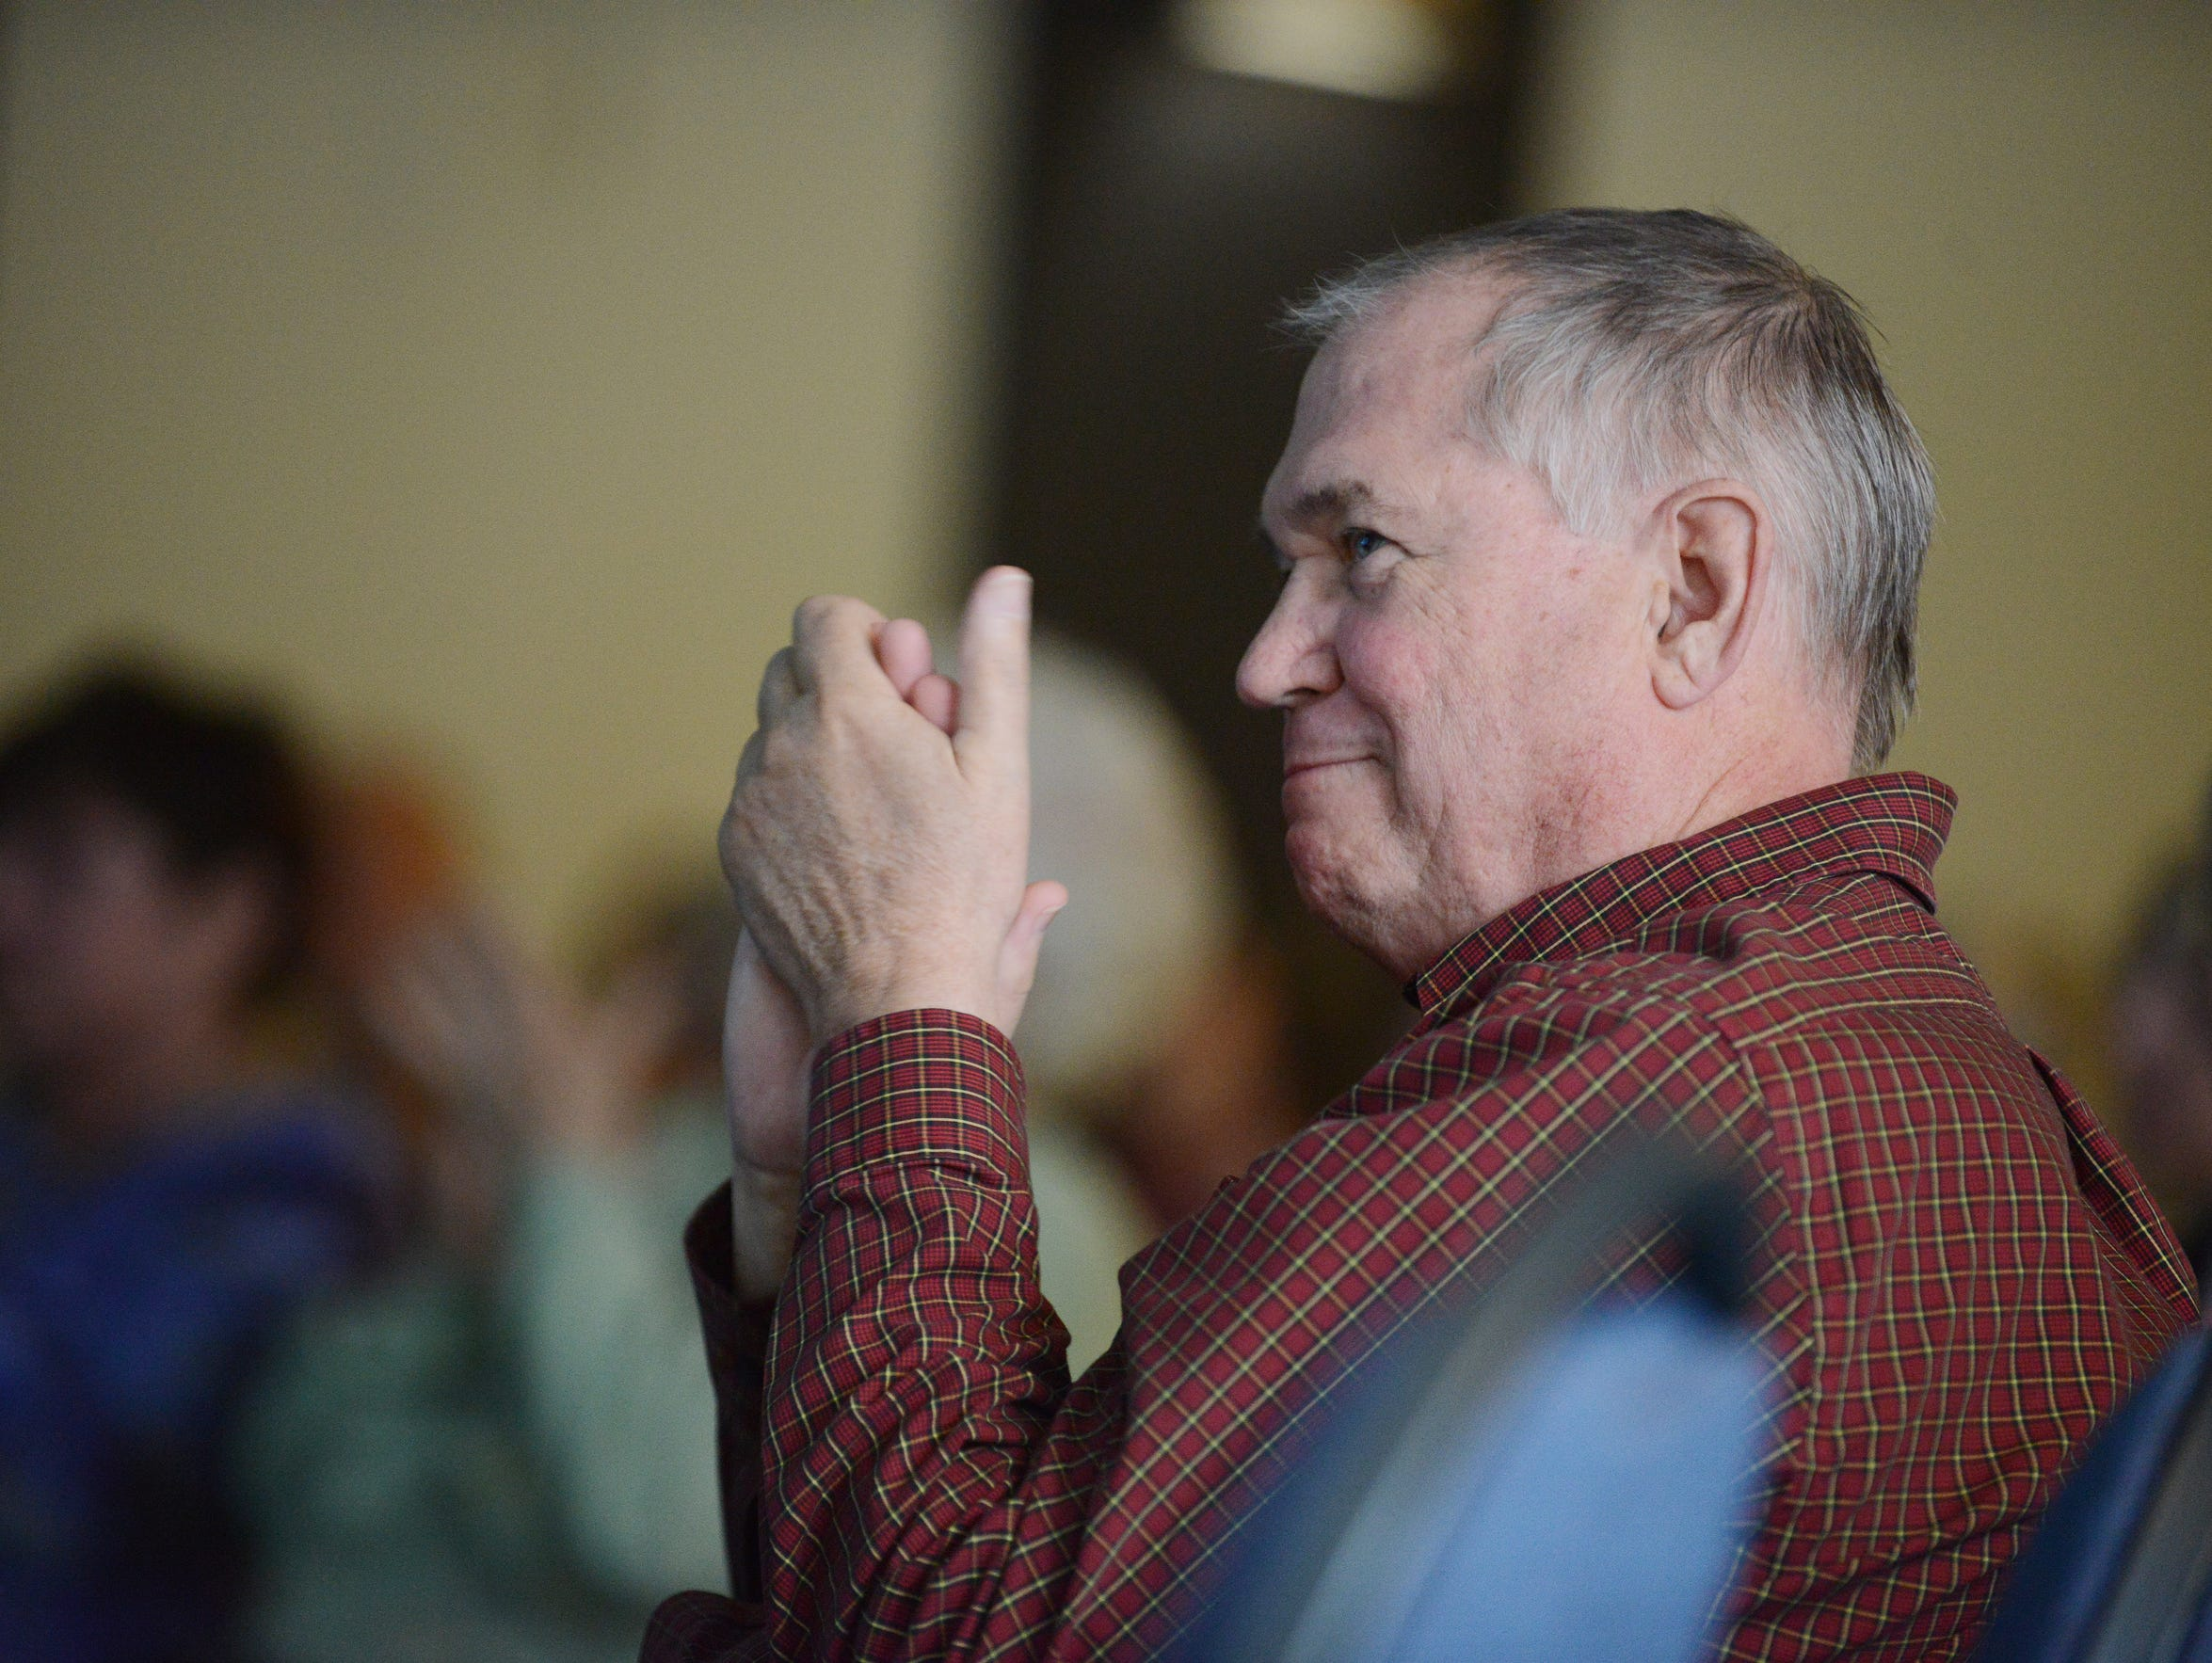 Dr. Peter Rasmussen applauds a fellow speaker during